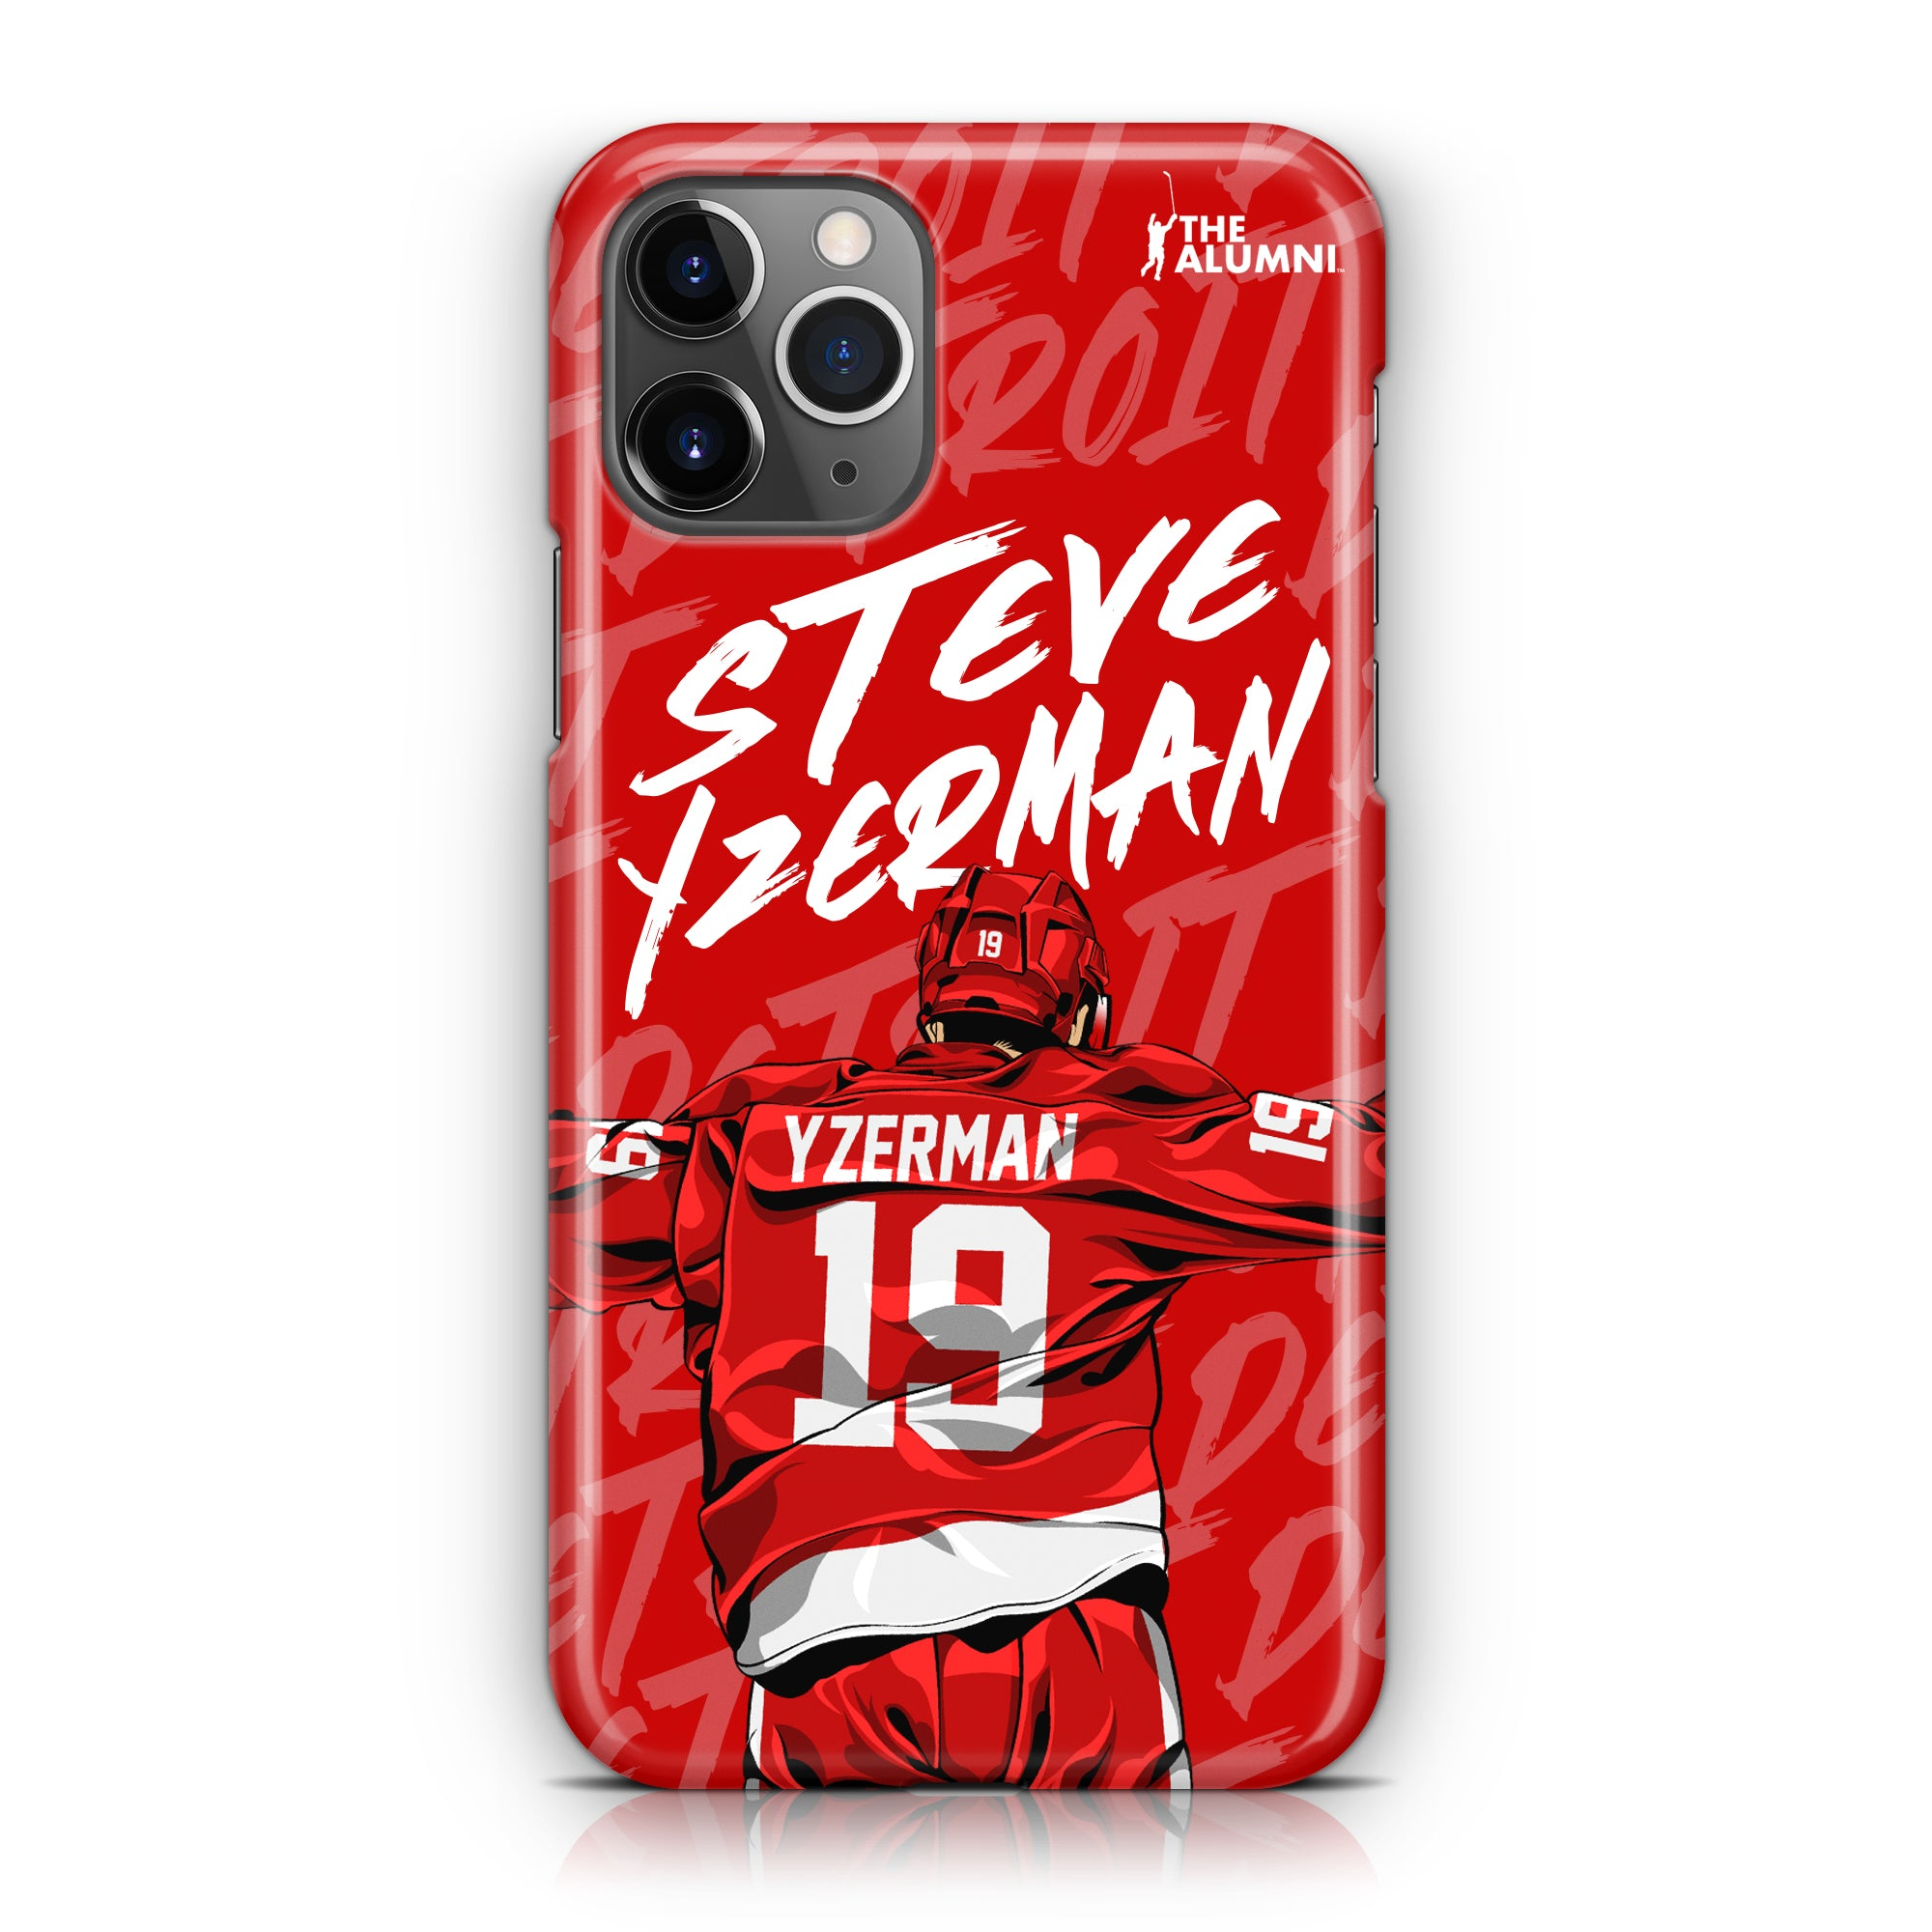 Yzerman Legend Series 2.0 Case